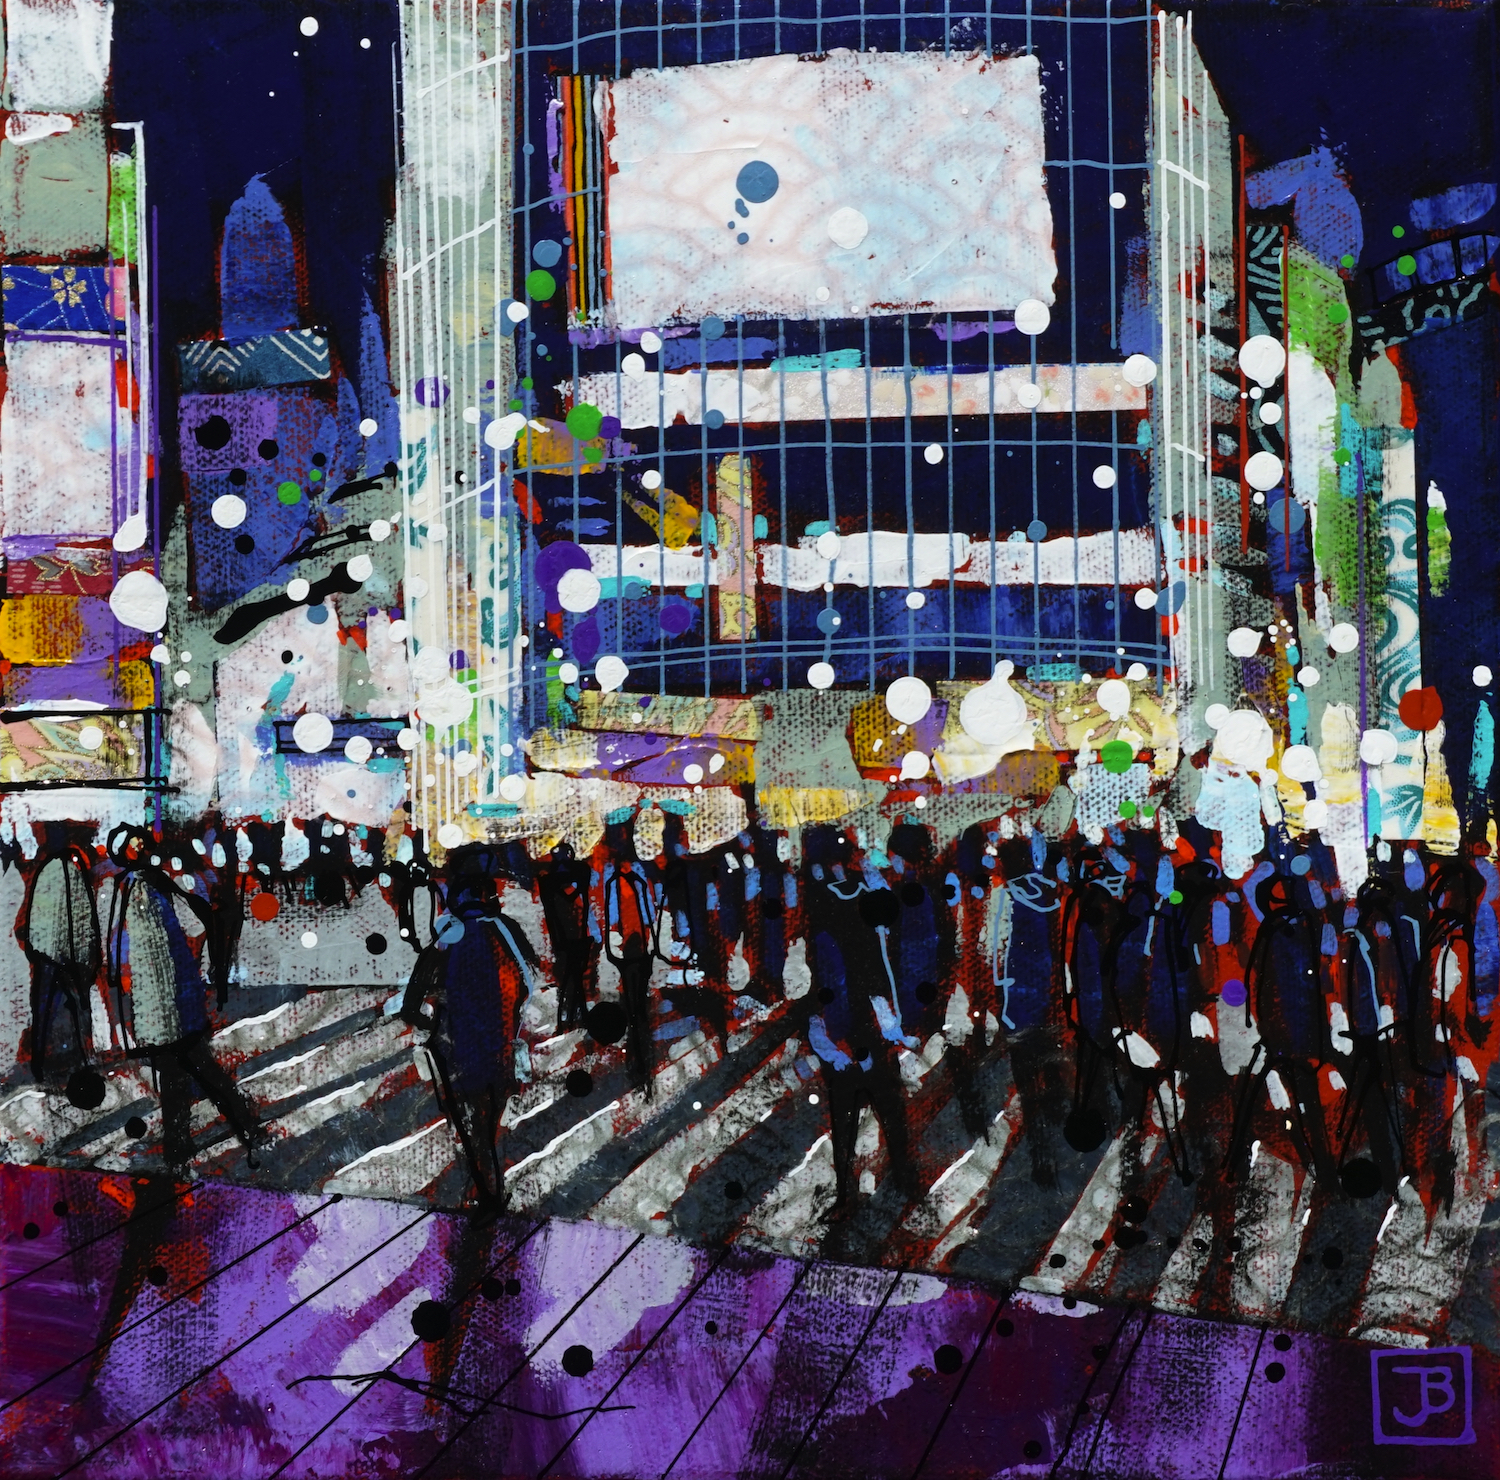 shibuya crossing, tokyo, japan,  mixed media on canvas, 10x10(in),  SOLD ,  2019